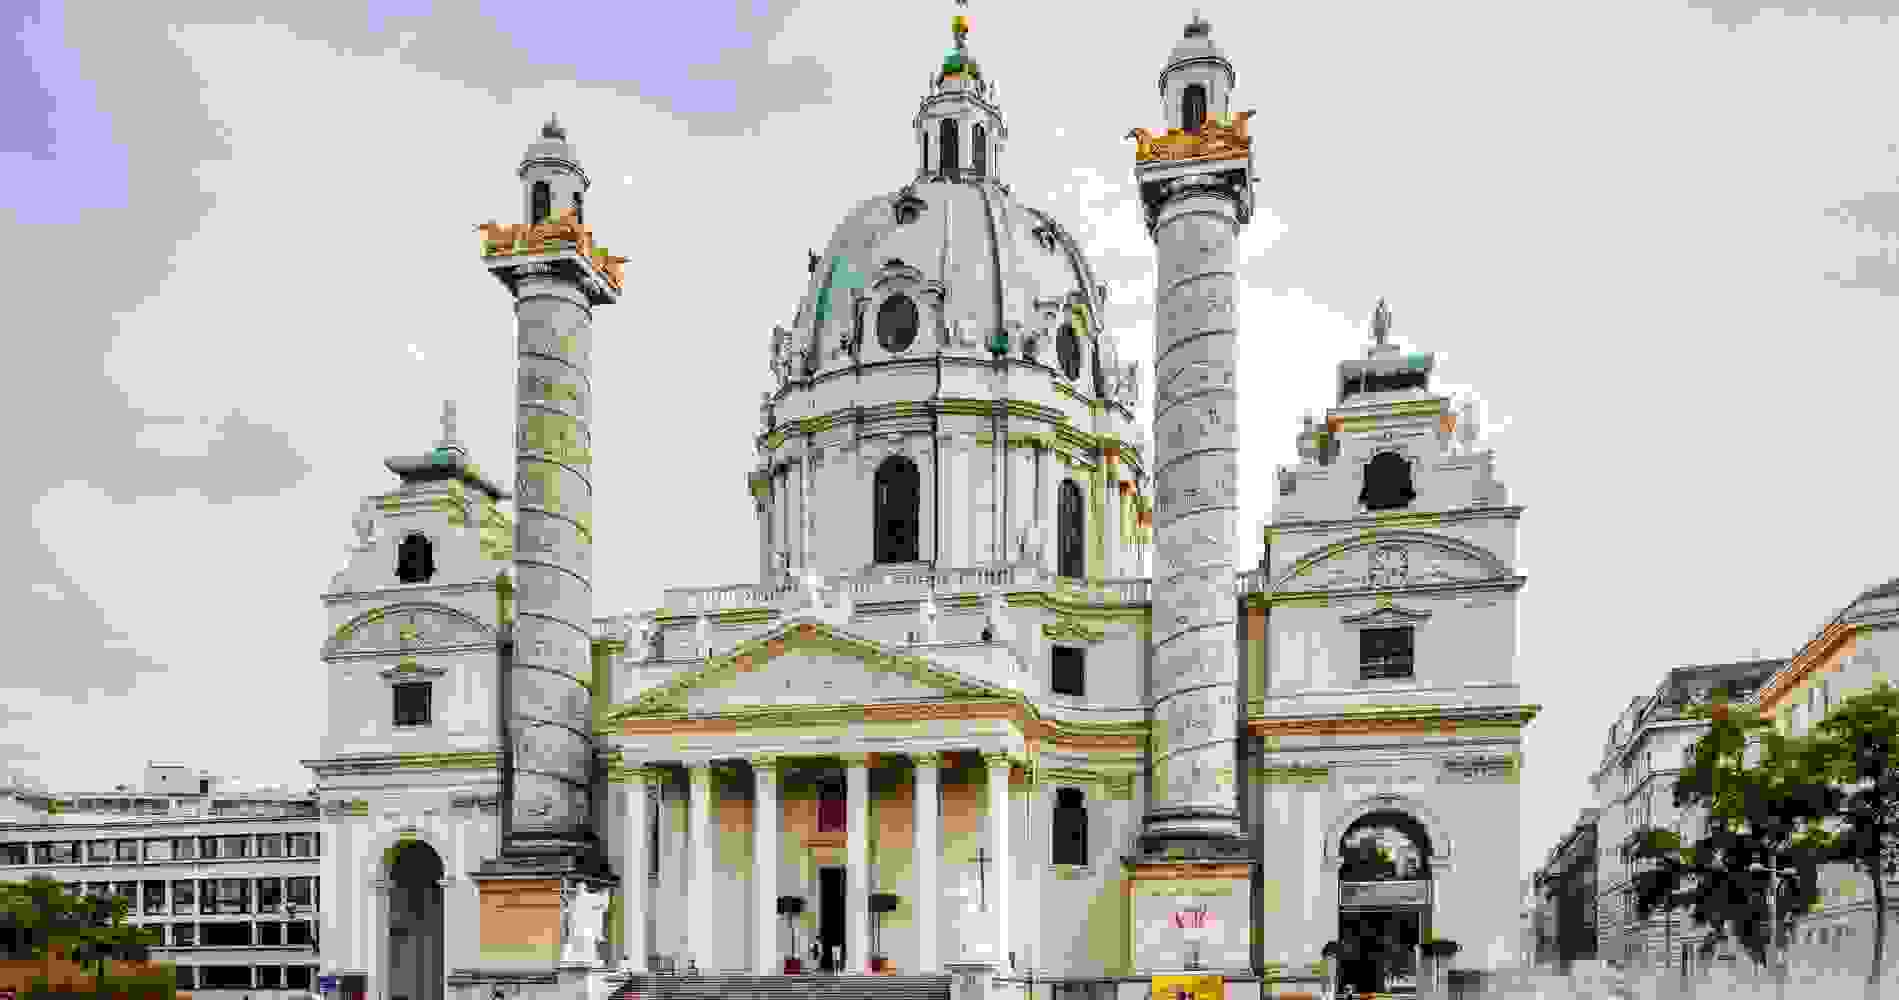 The Karlskirche (consecrated 1737) | Source: wien.info